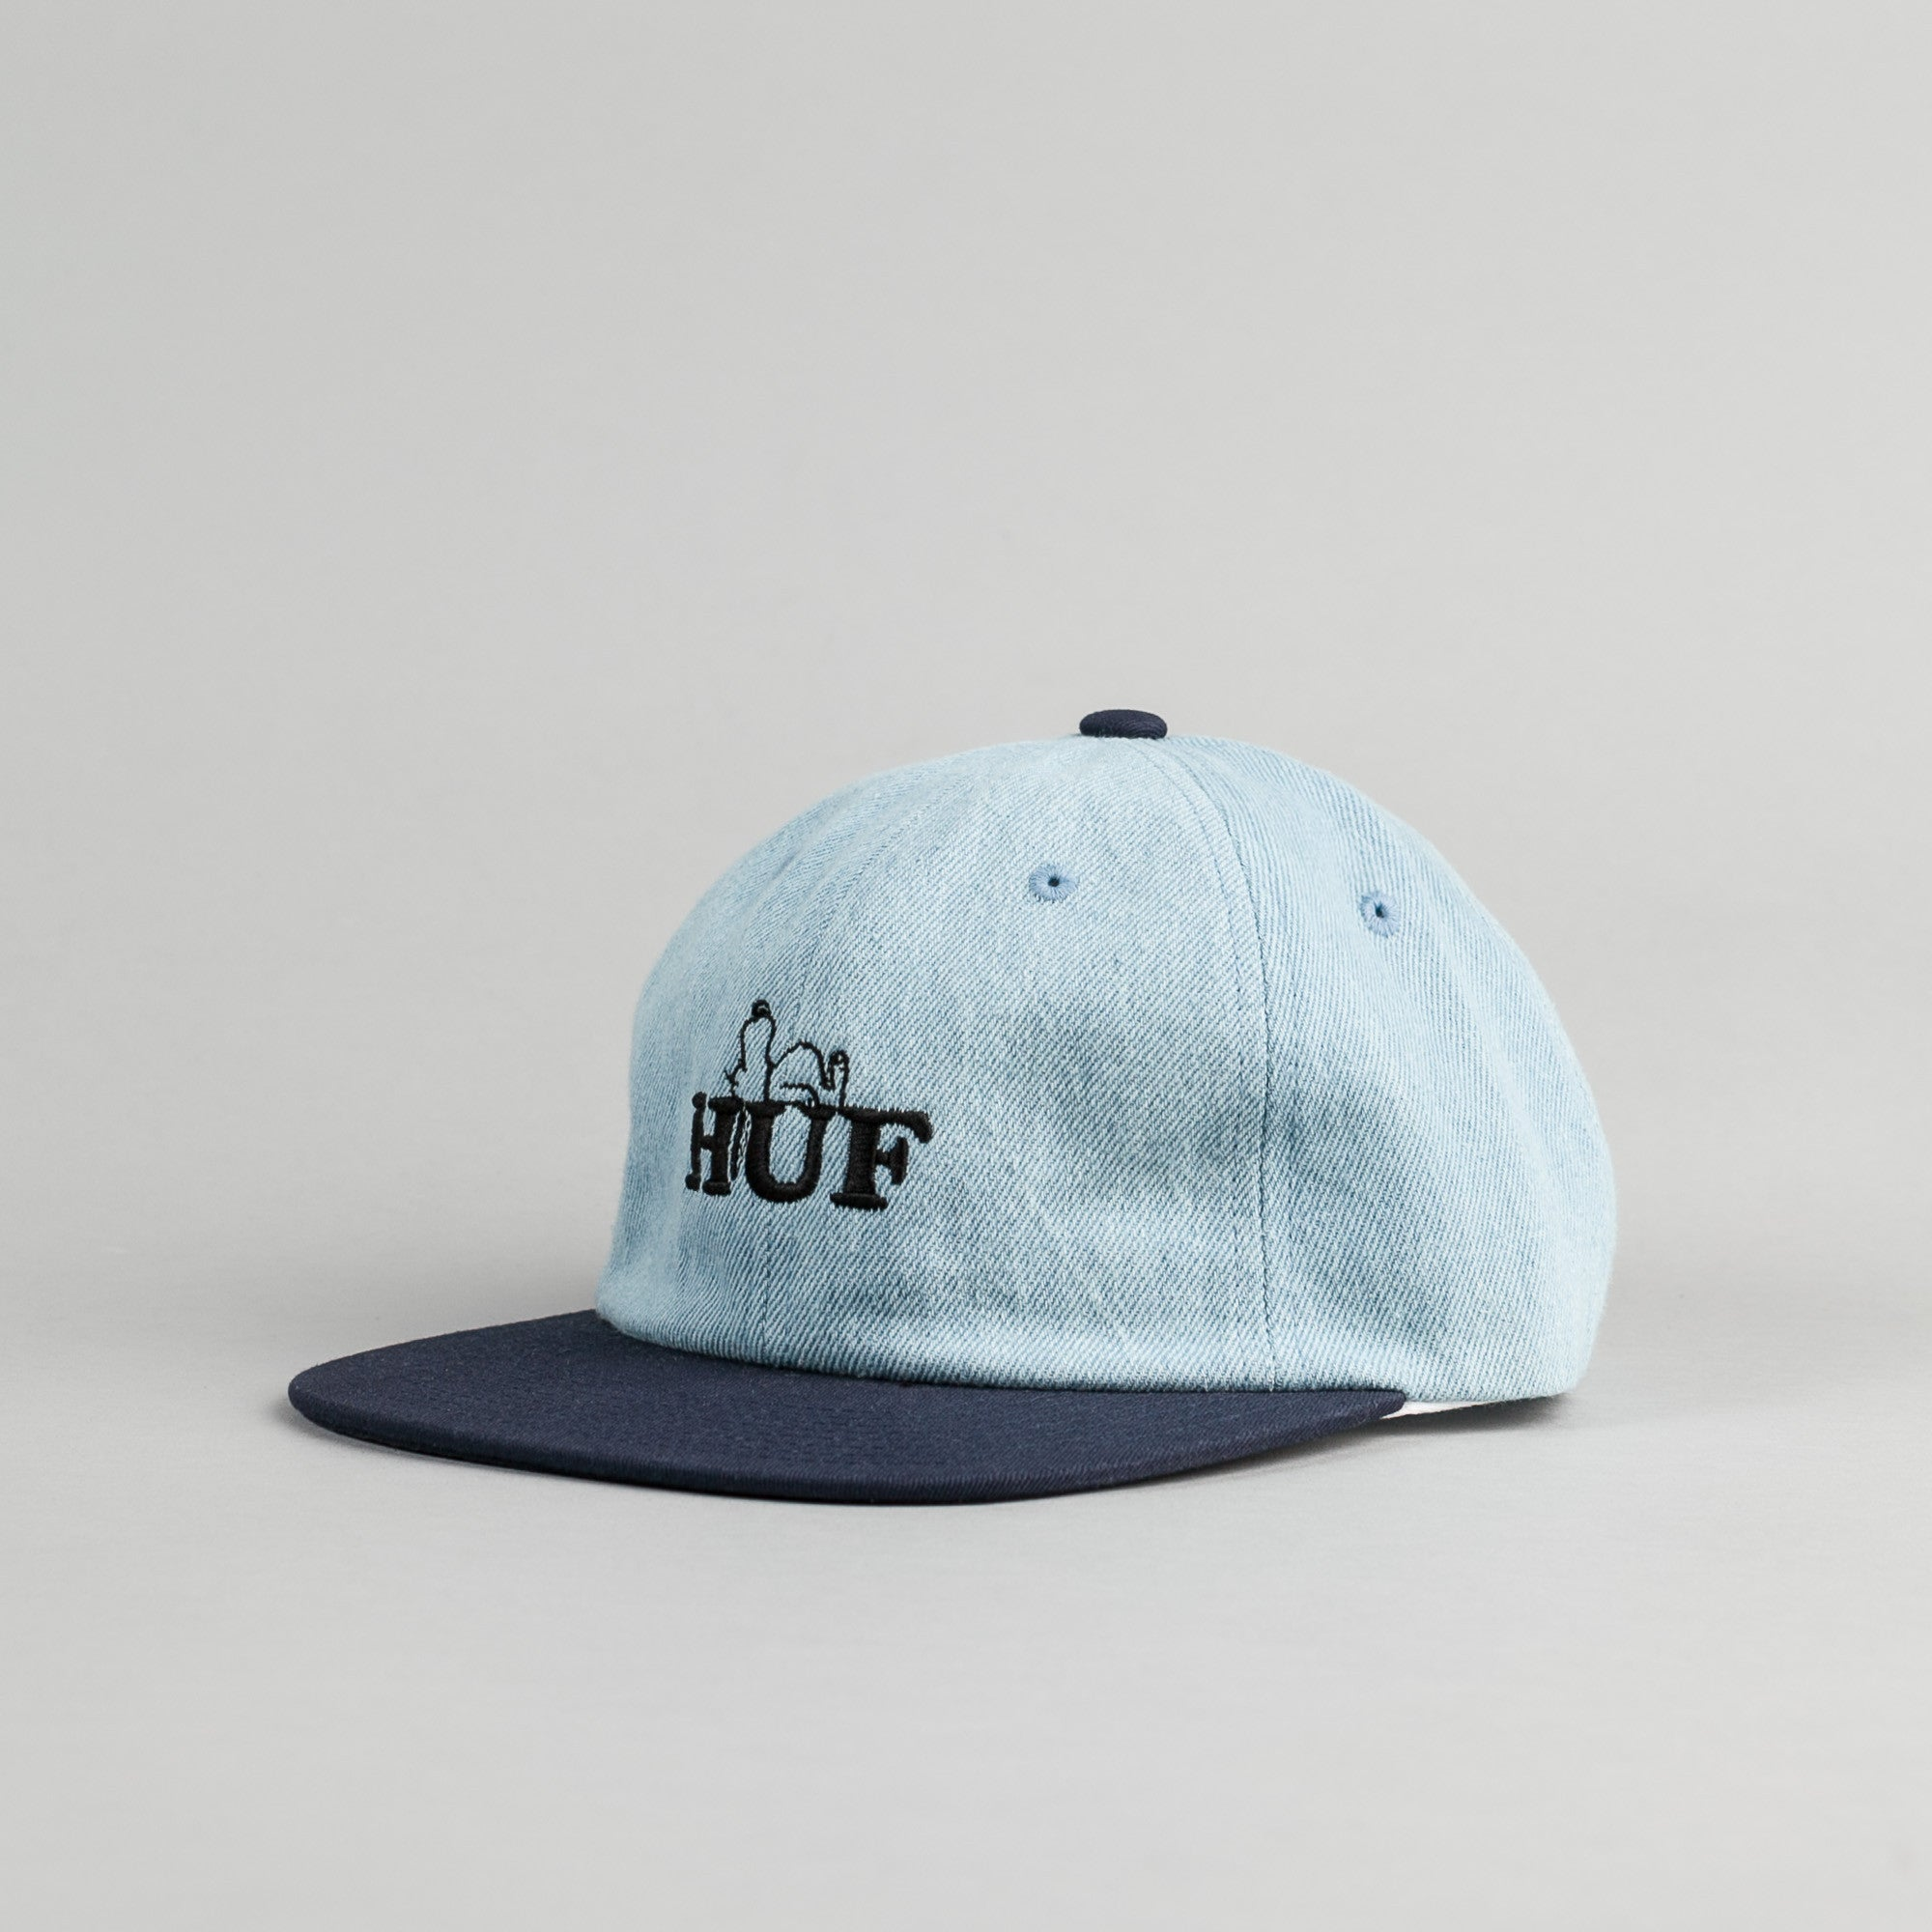 HUF x Snoopy 6 Panel Cap - Denim / Navy